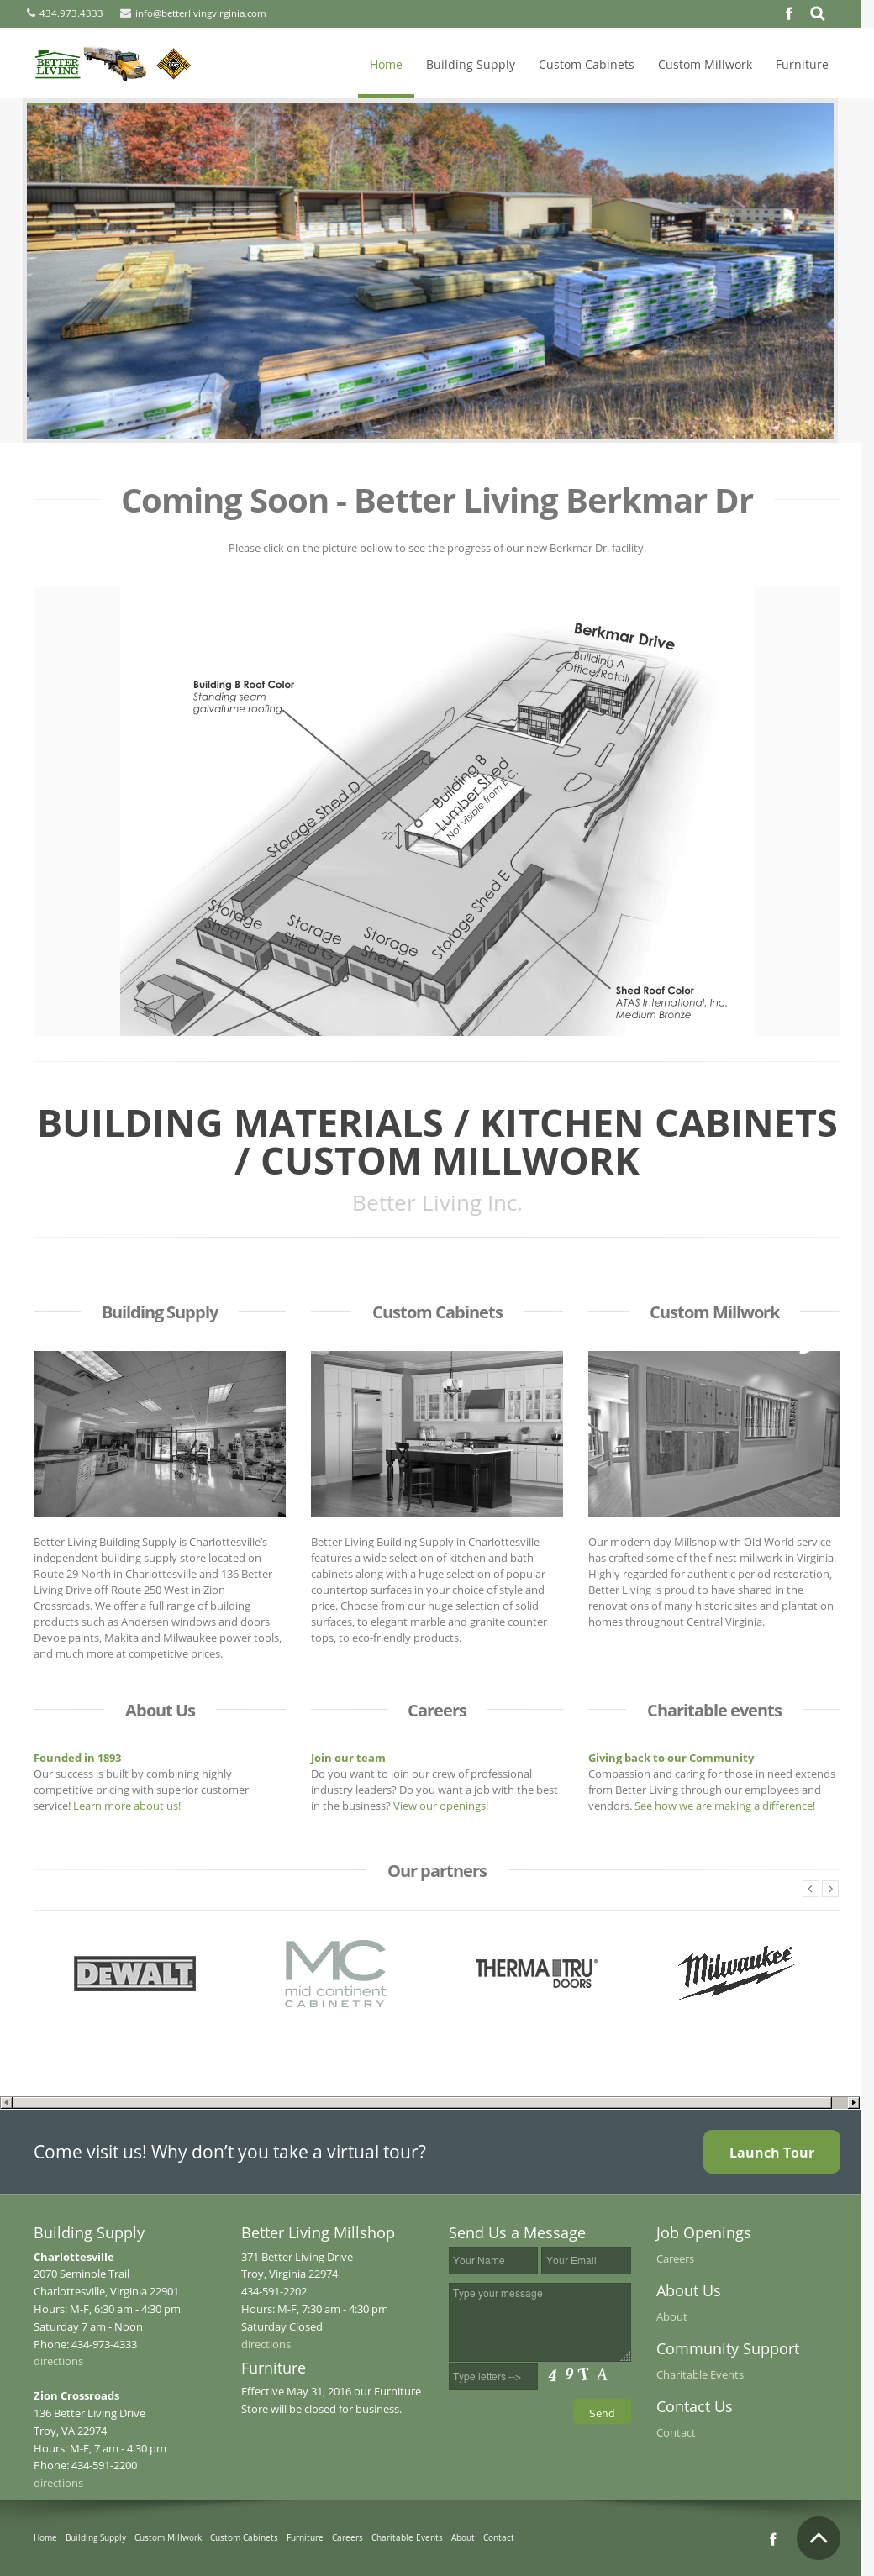 Better Living Building Supply Journal Foto And Wallpaper